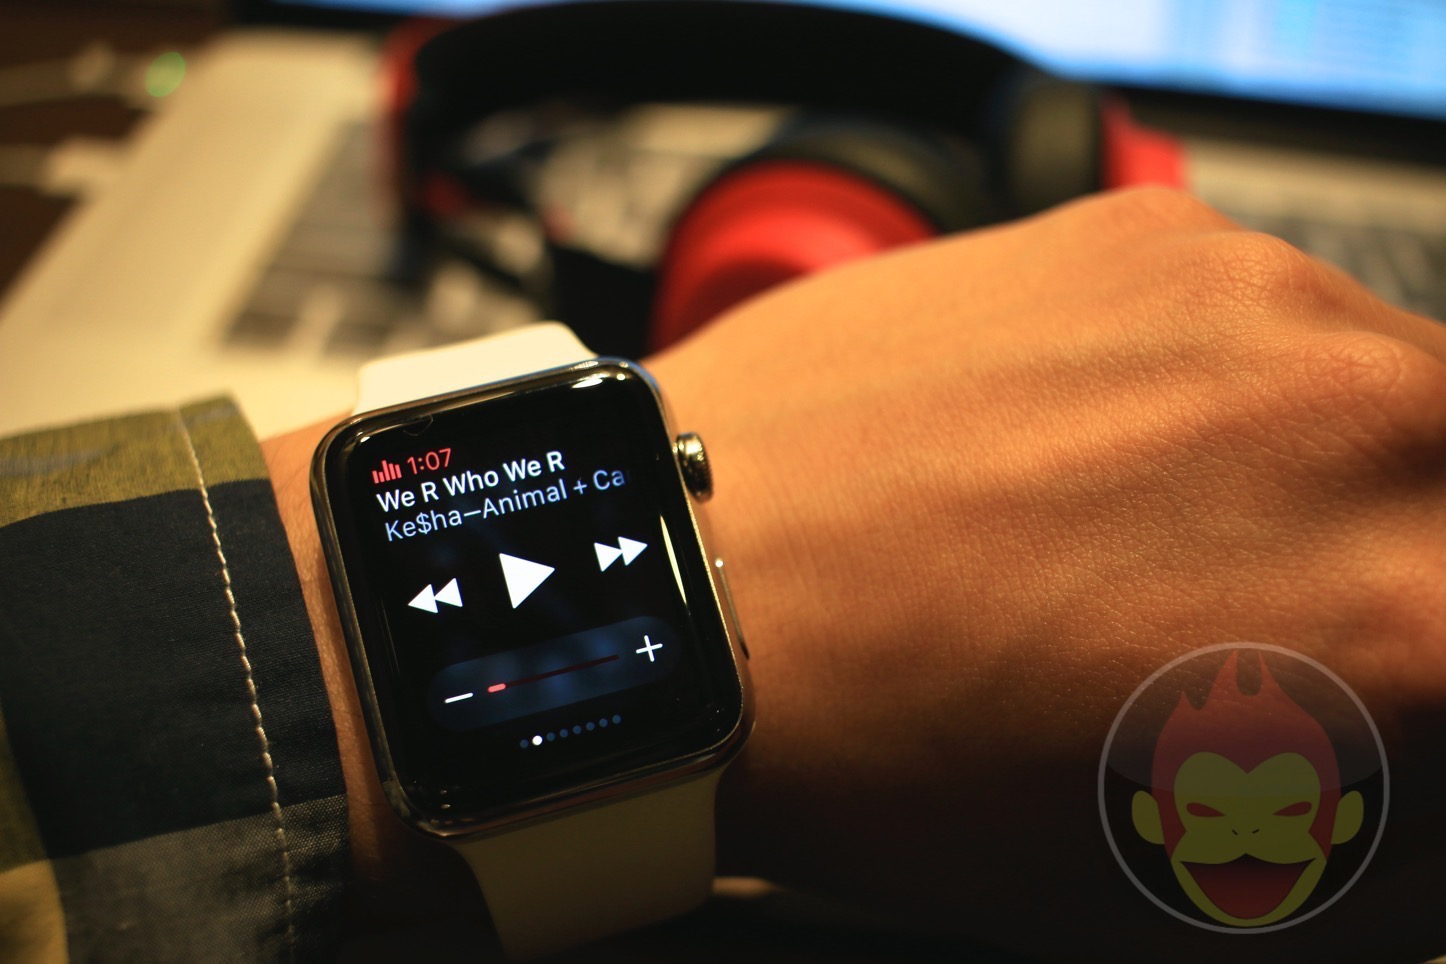 Using-Glances-with-Apple-Watch-To-Control-Music-01.jpg